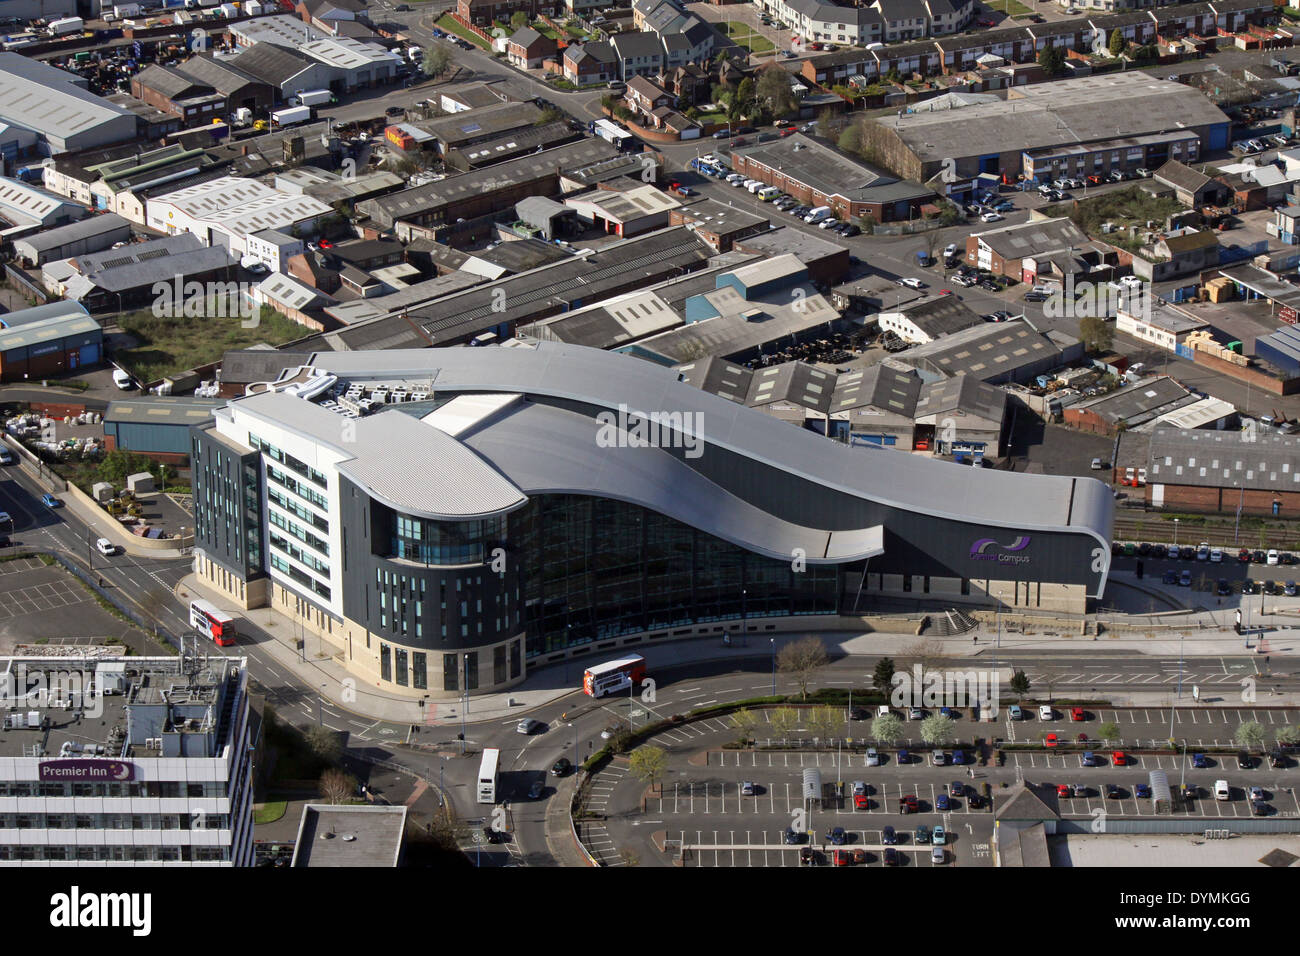 aerial view of Sandwell College Central Campus in West Bromwich, Birmingham - Stock Image